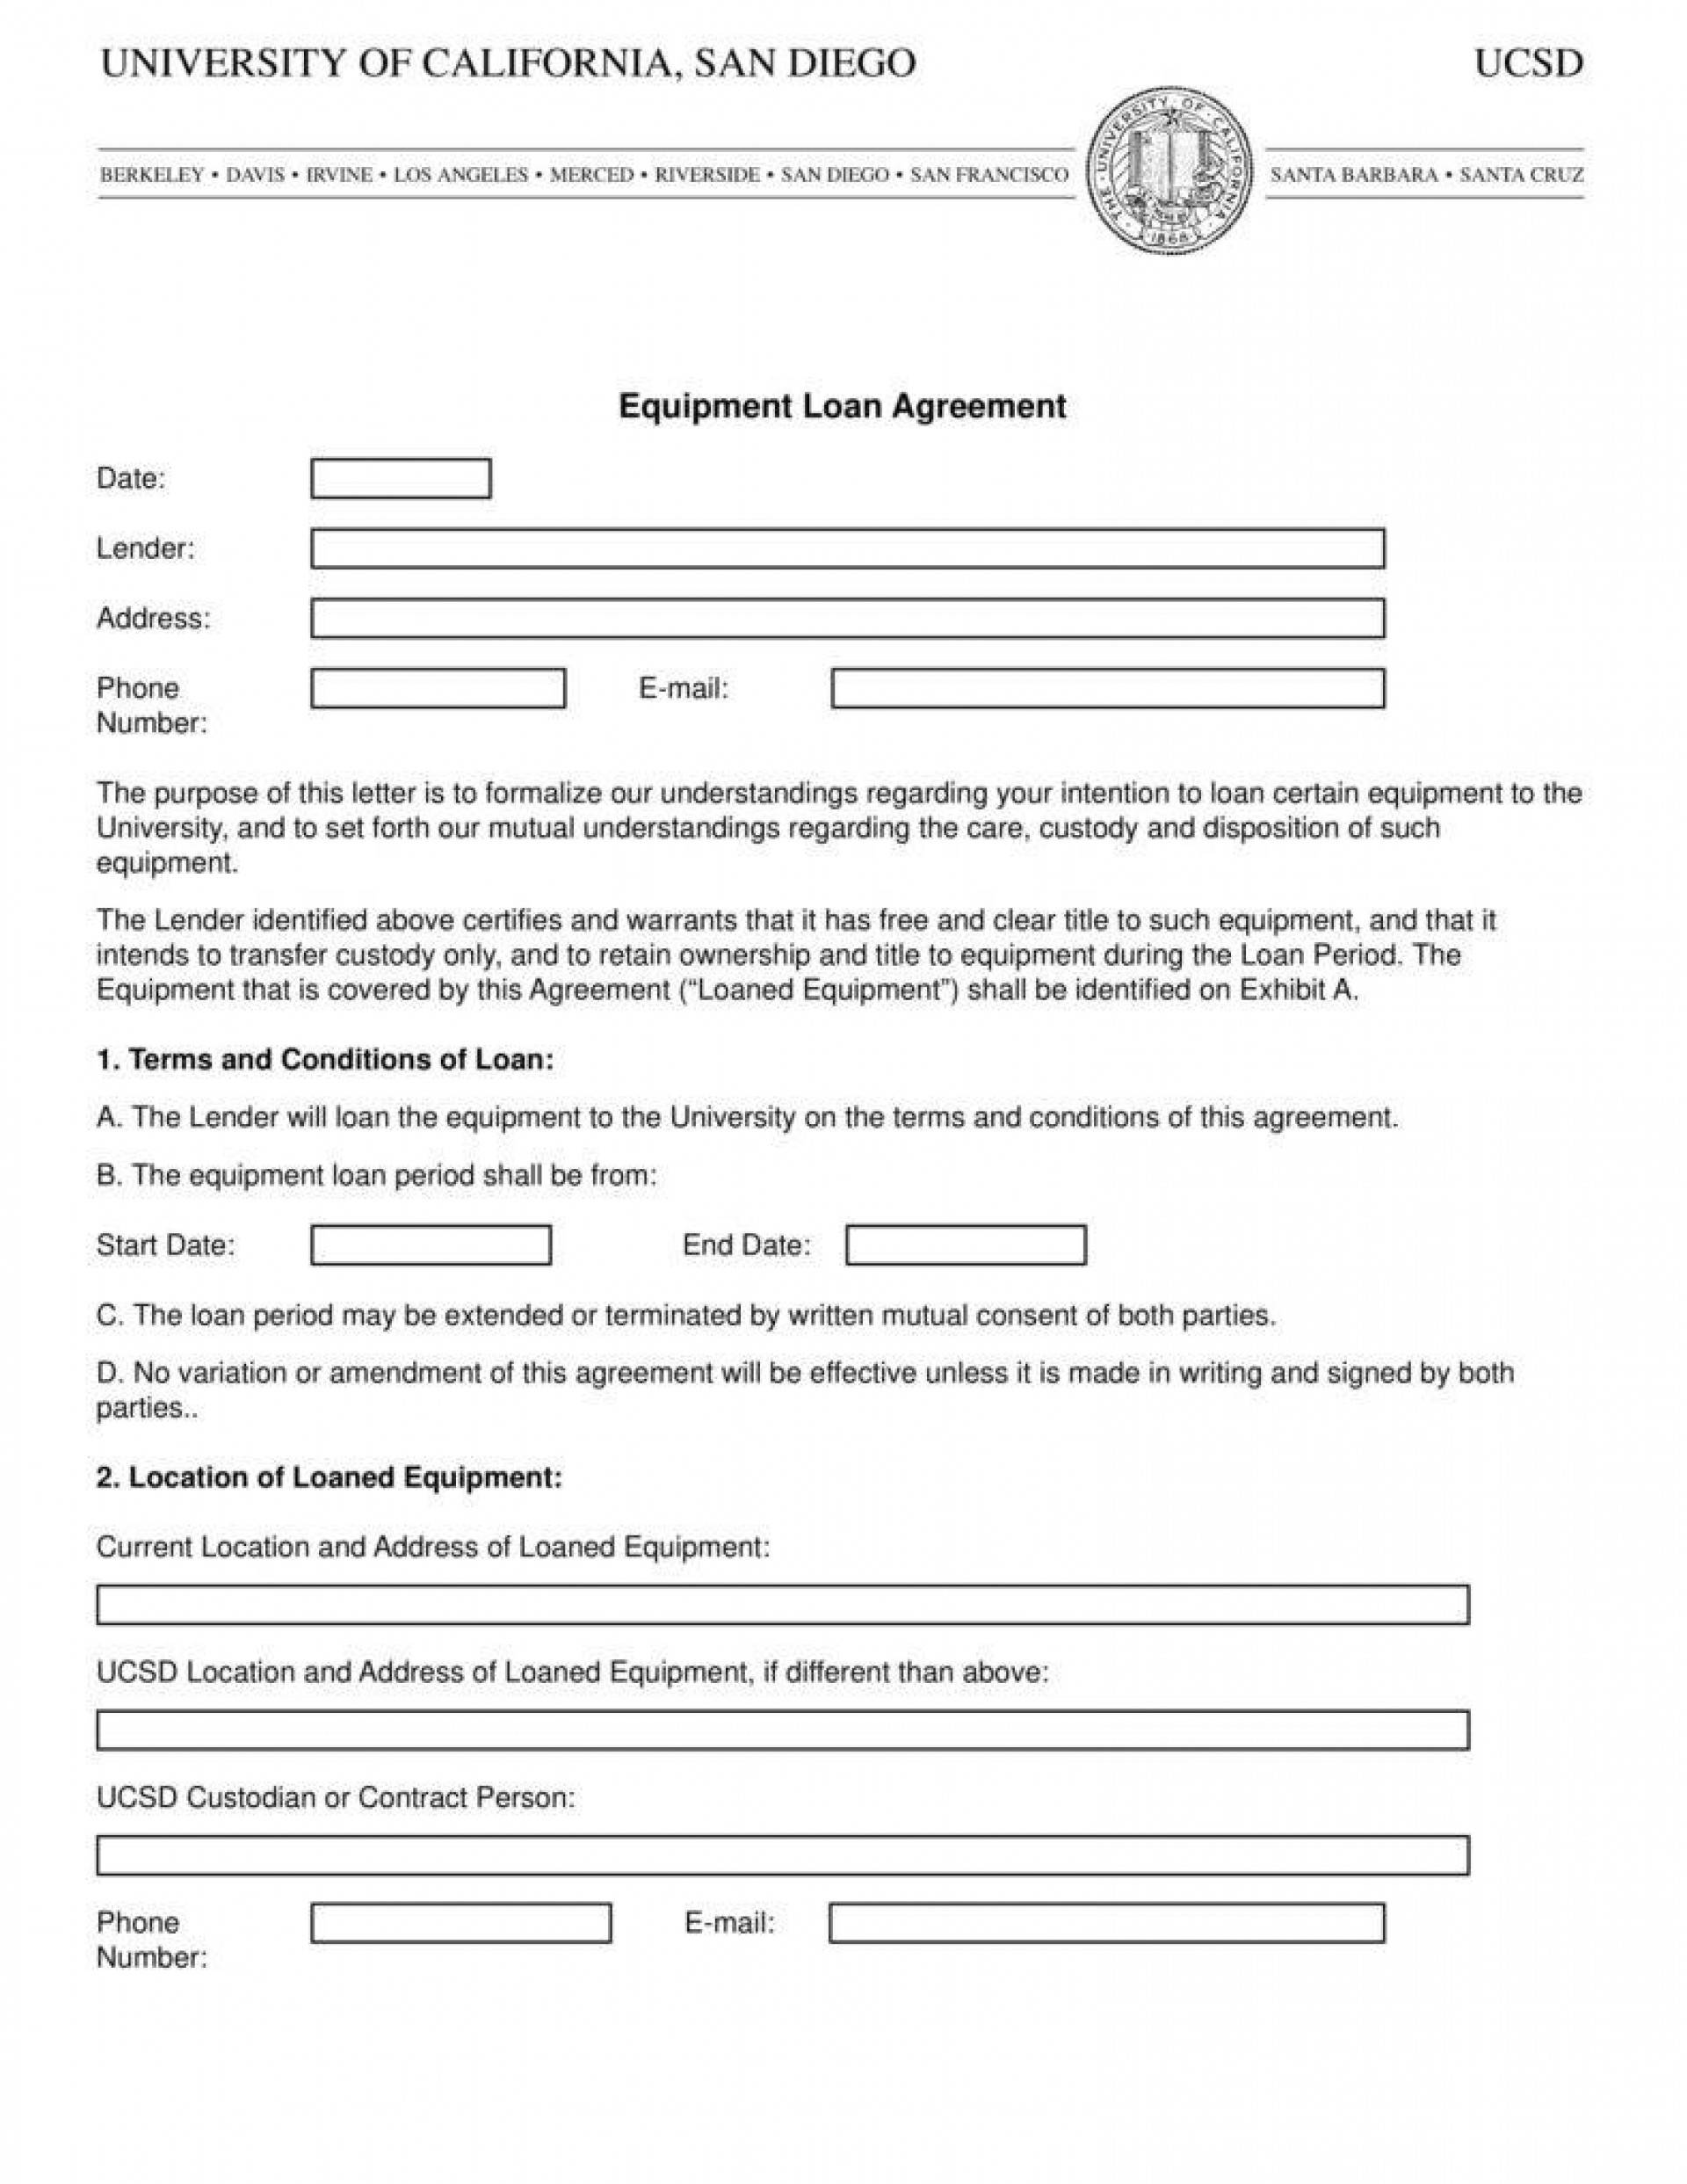 Sample Equipment Loan Agreement Template